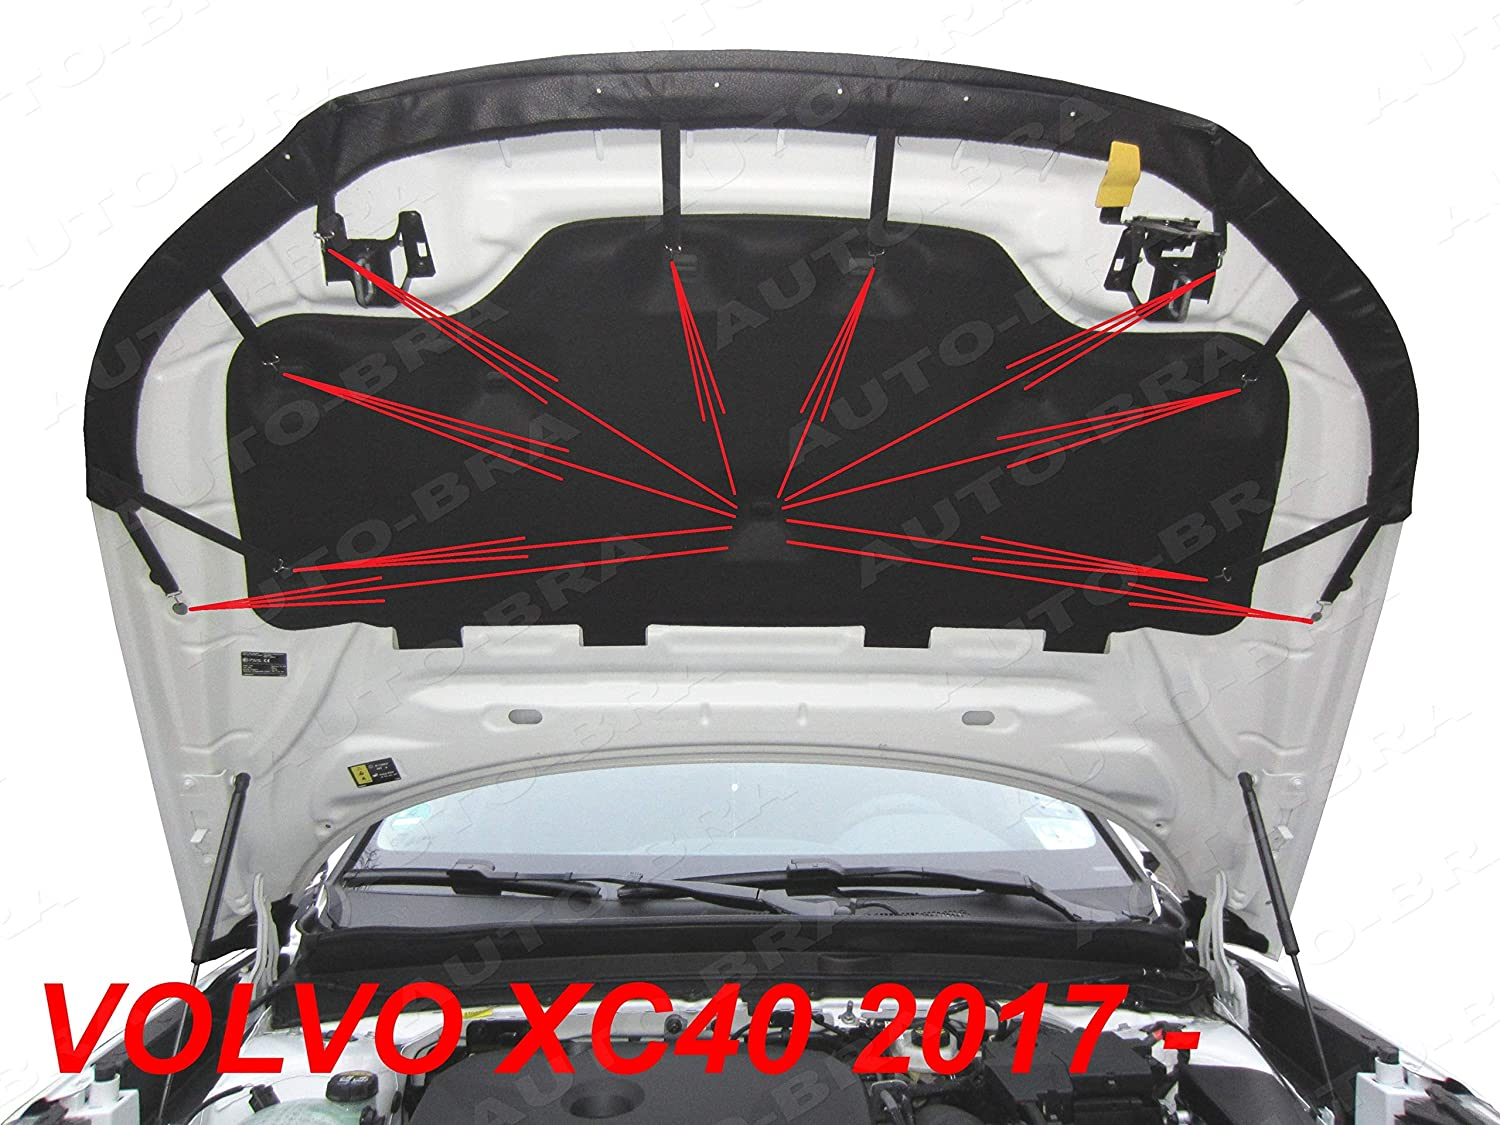 AB3-00374 HOOD BRA fit Volvo XC40 since 2017 Front End Nose Mask Bonnet Bra STONEGUARD PROTECTOR TUNING